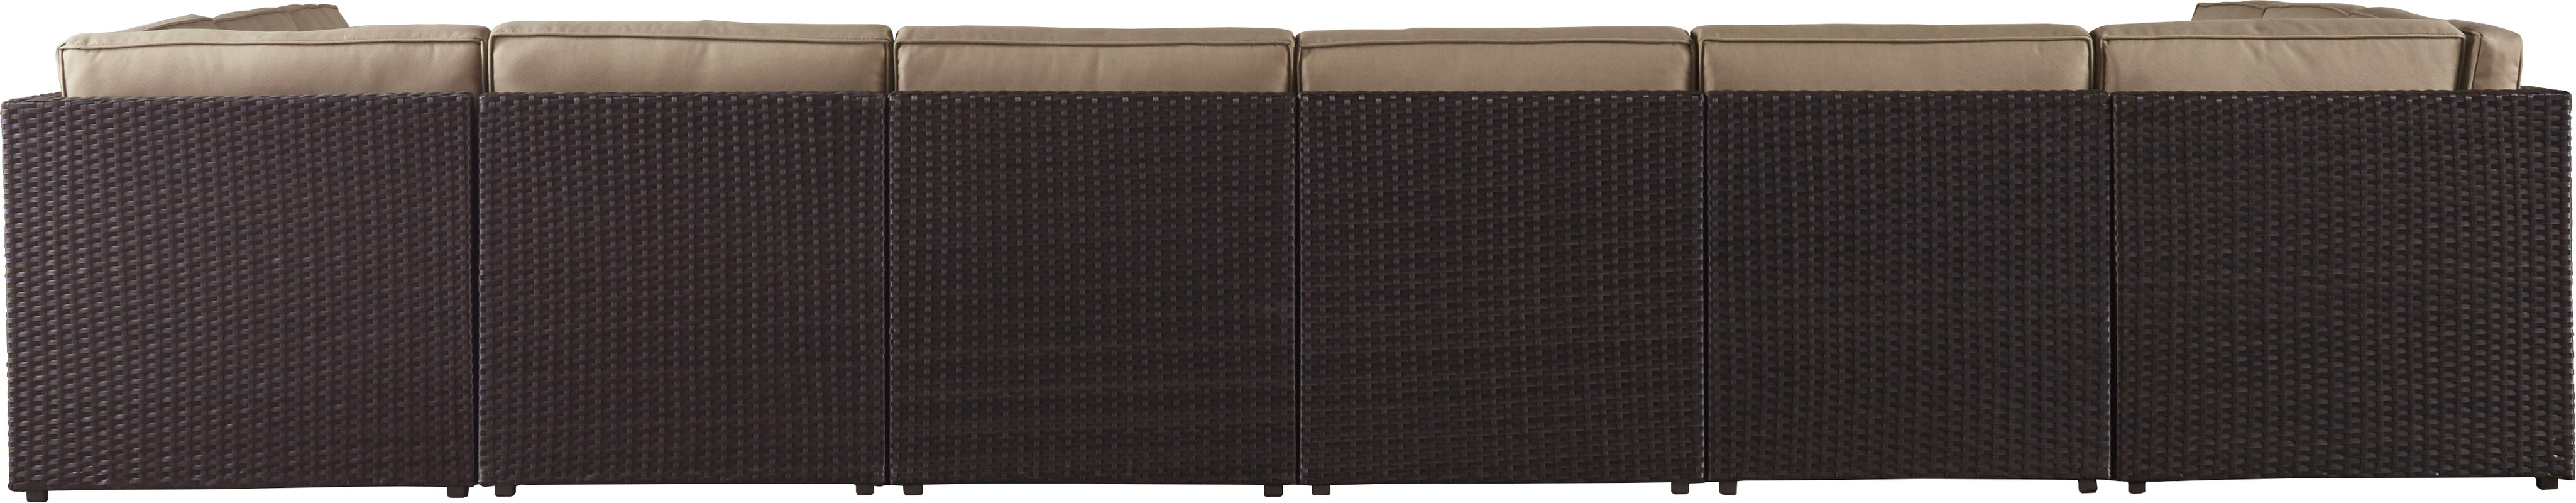 Brayden Studio Mariscal 12 Piece Deep Seating Group with Cushions